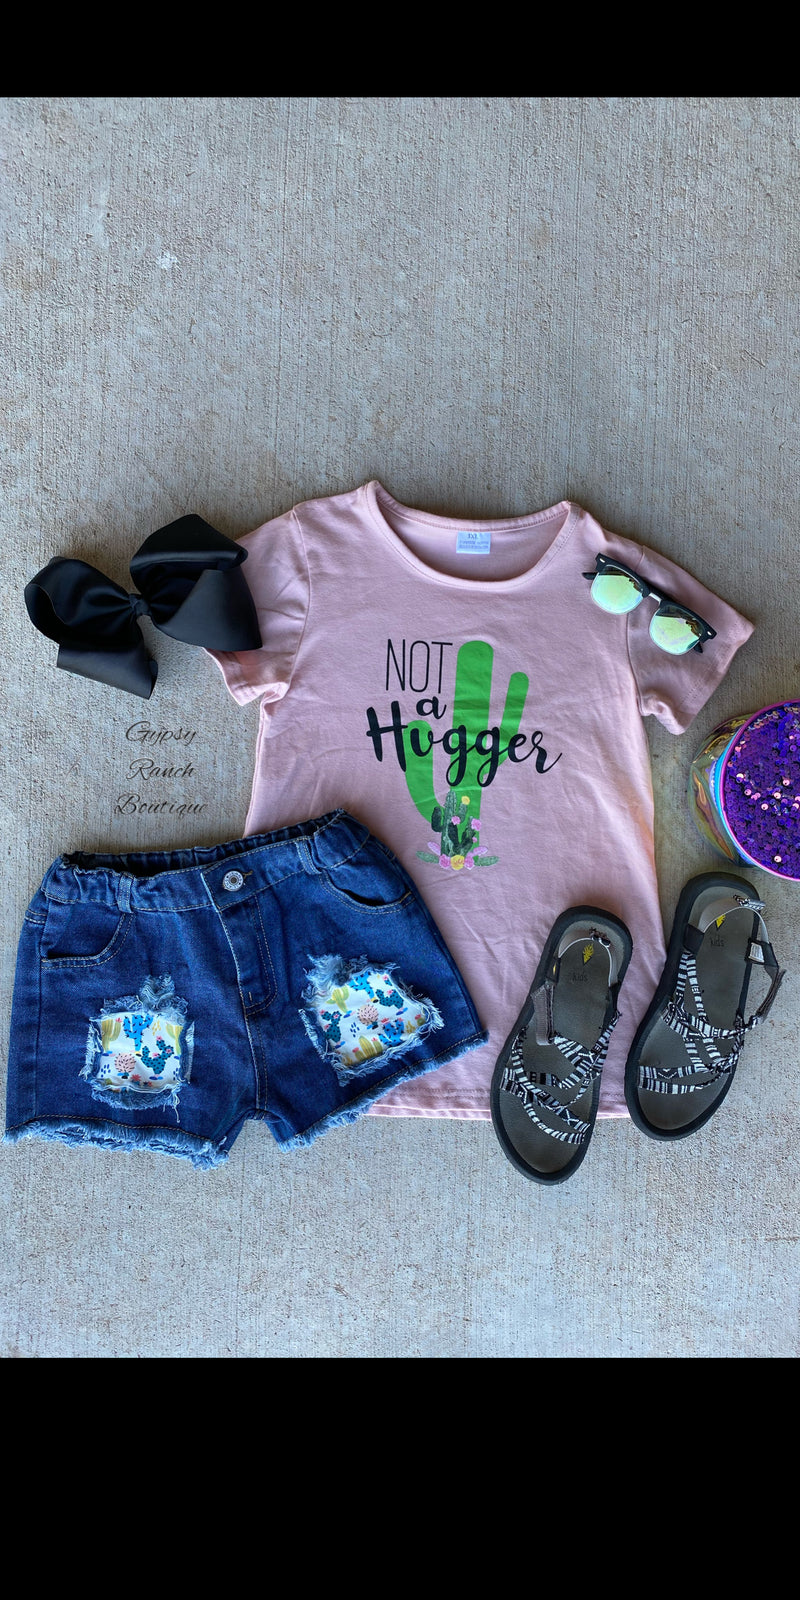 Cactus Not A Hugger Top & Short Set - Kids